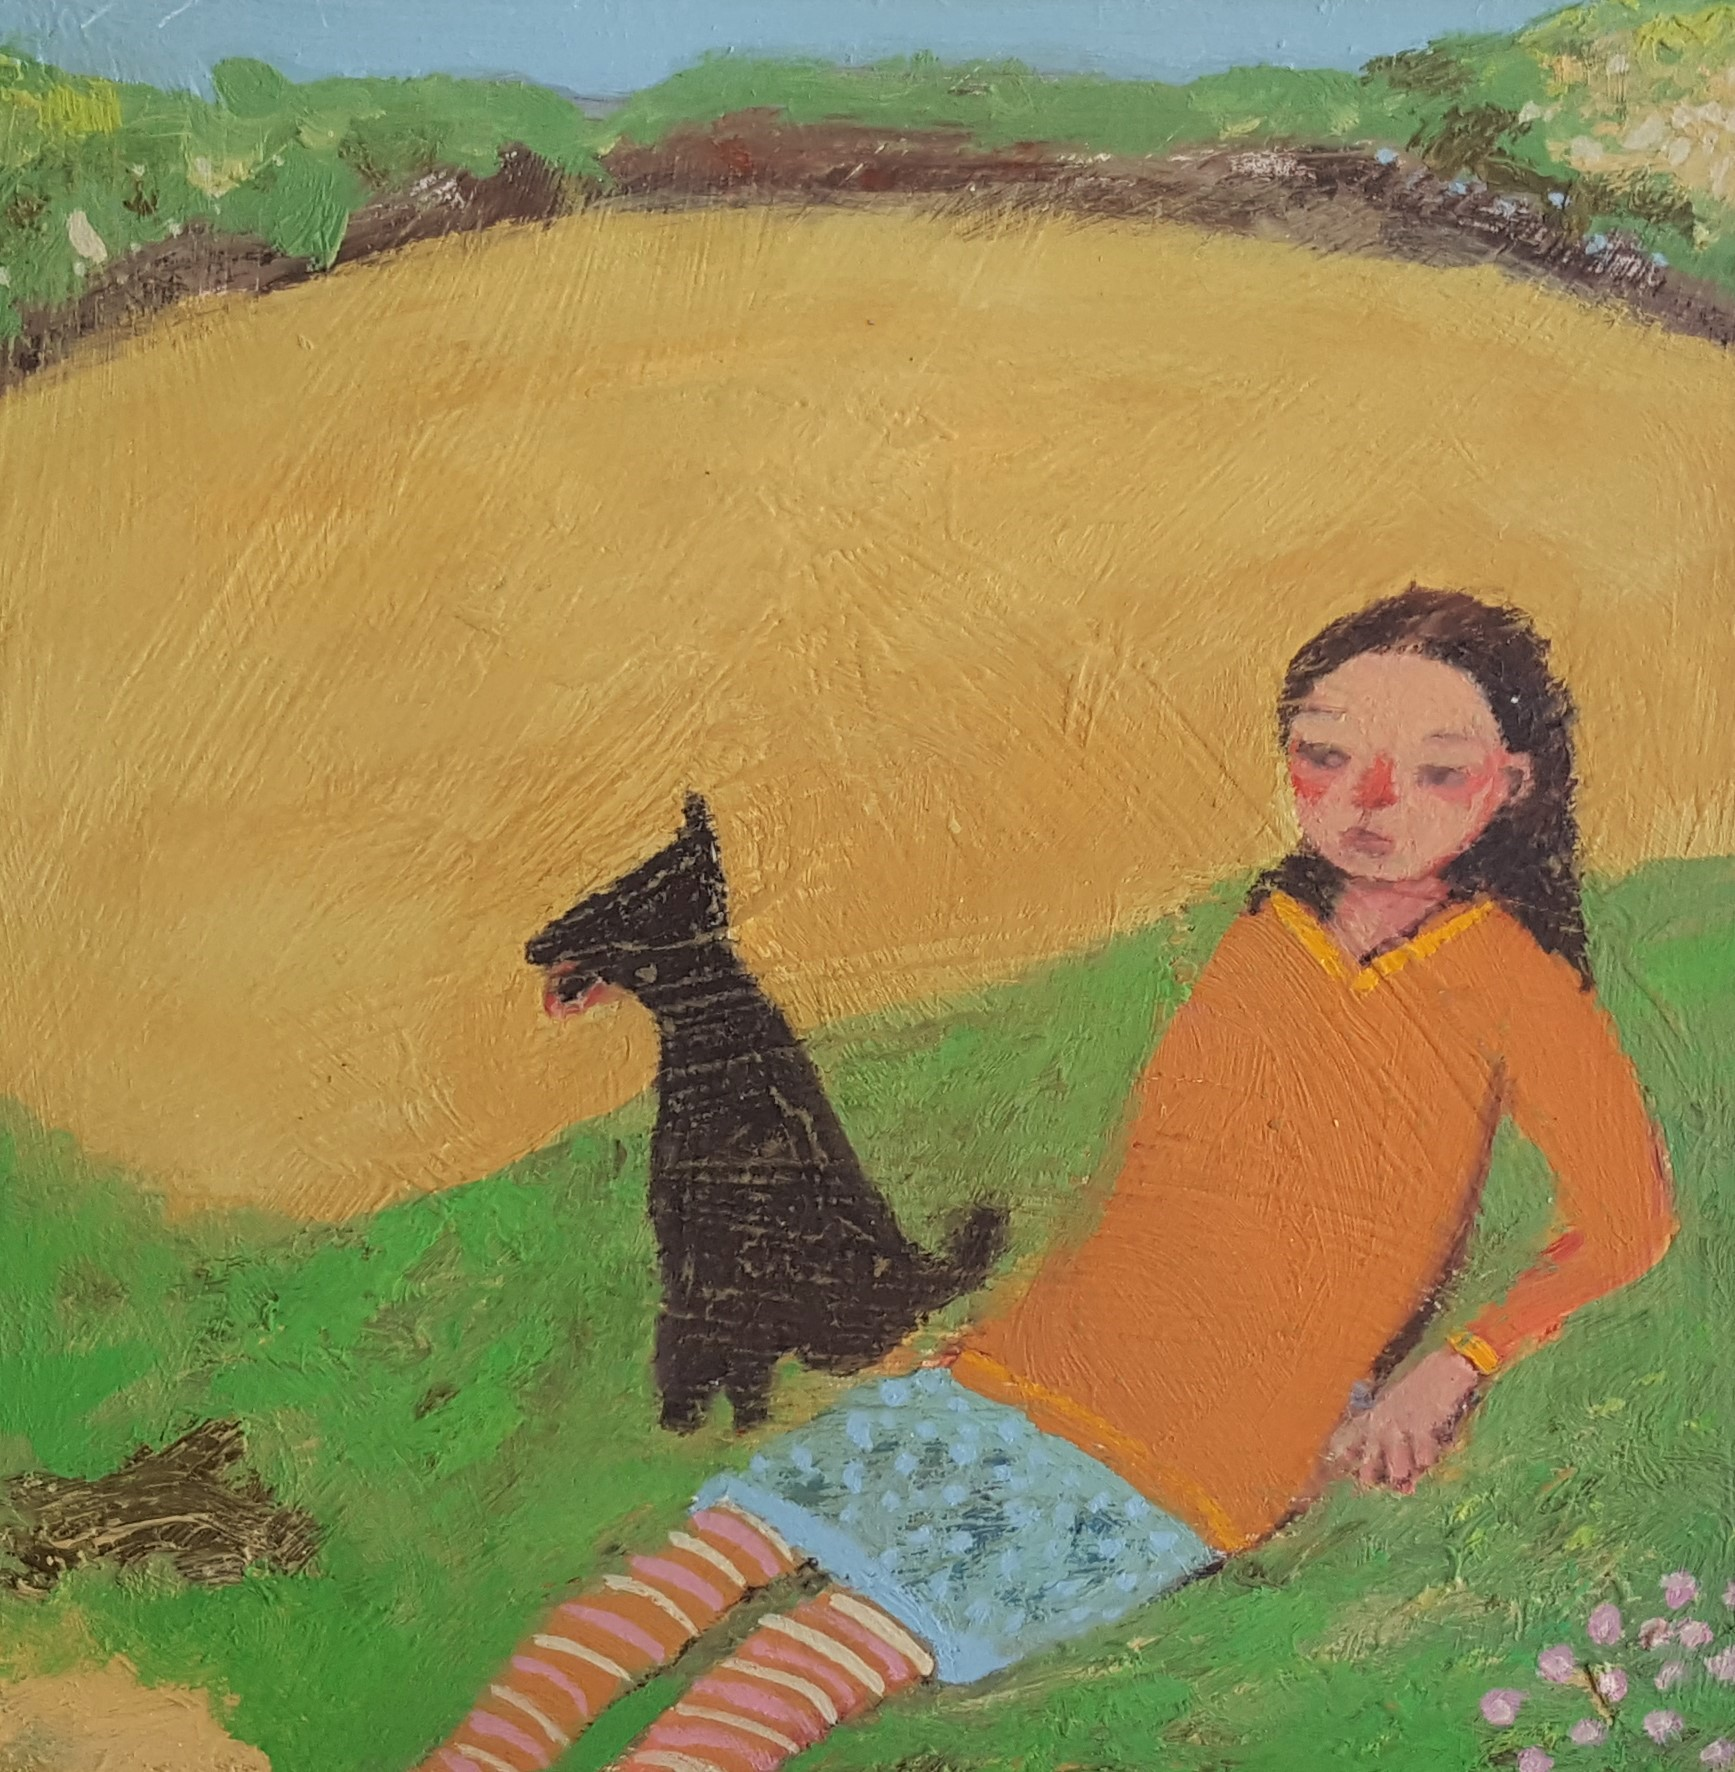 'Walking the Woof' by Siobhan Purdy, shown at the Byre Gallery